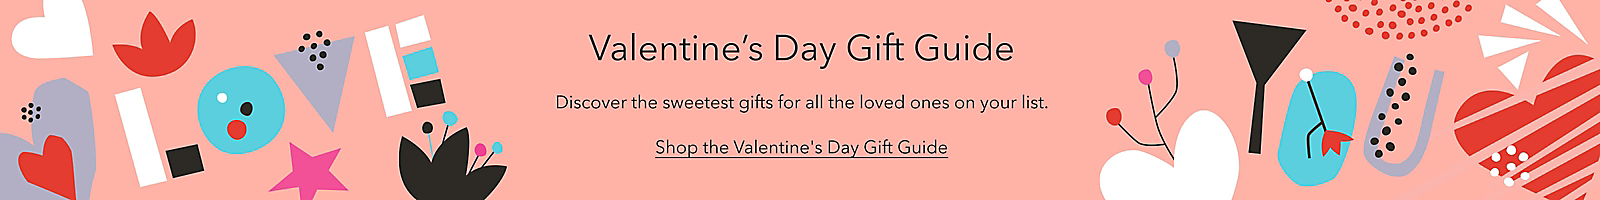 Valentine's Day Gift Guide Discover the sweetest gifts for all the loved ones on your list. Shop the Valentine's Day Gift Guide